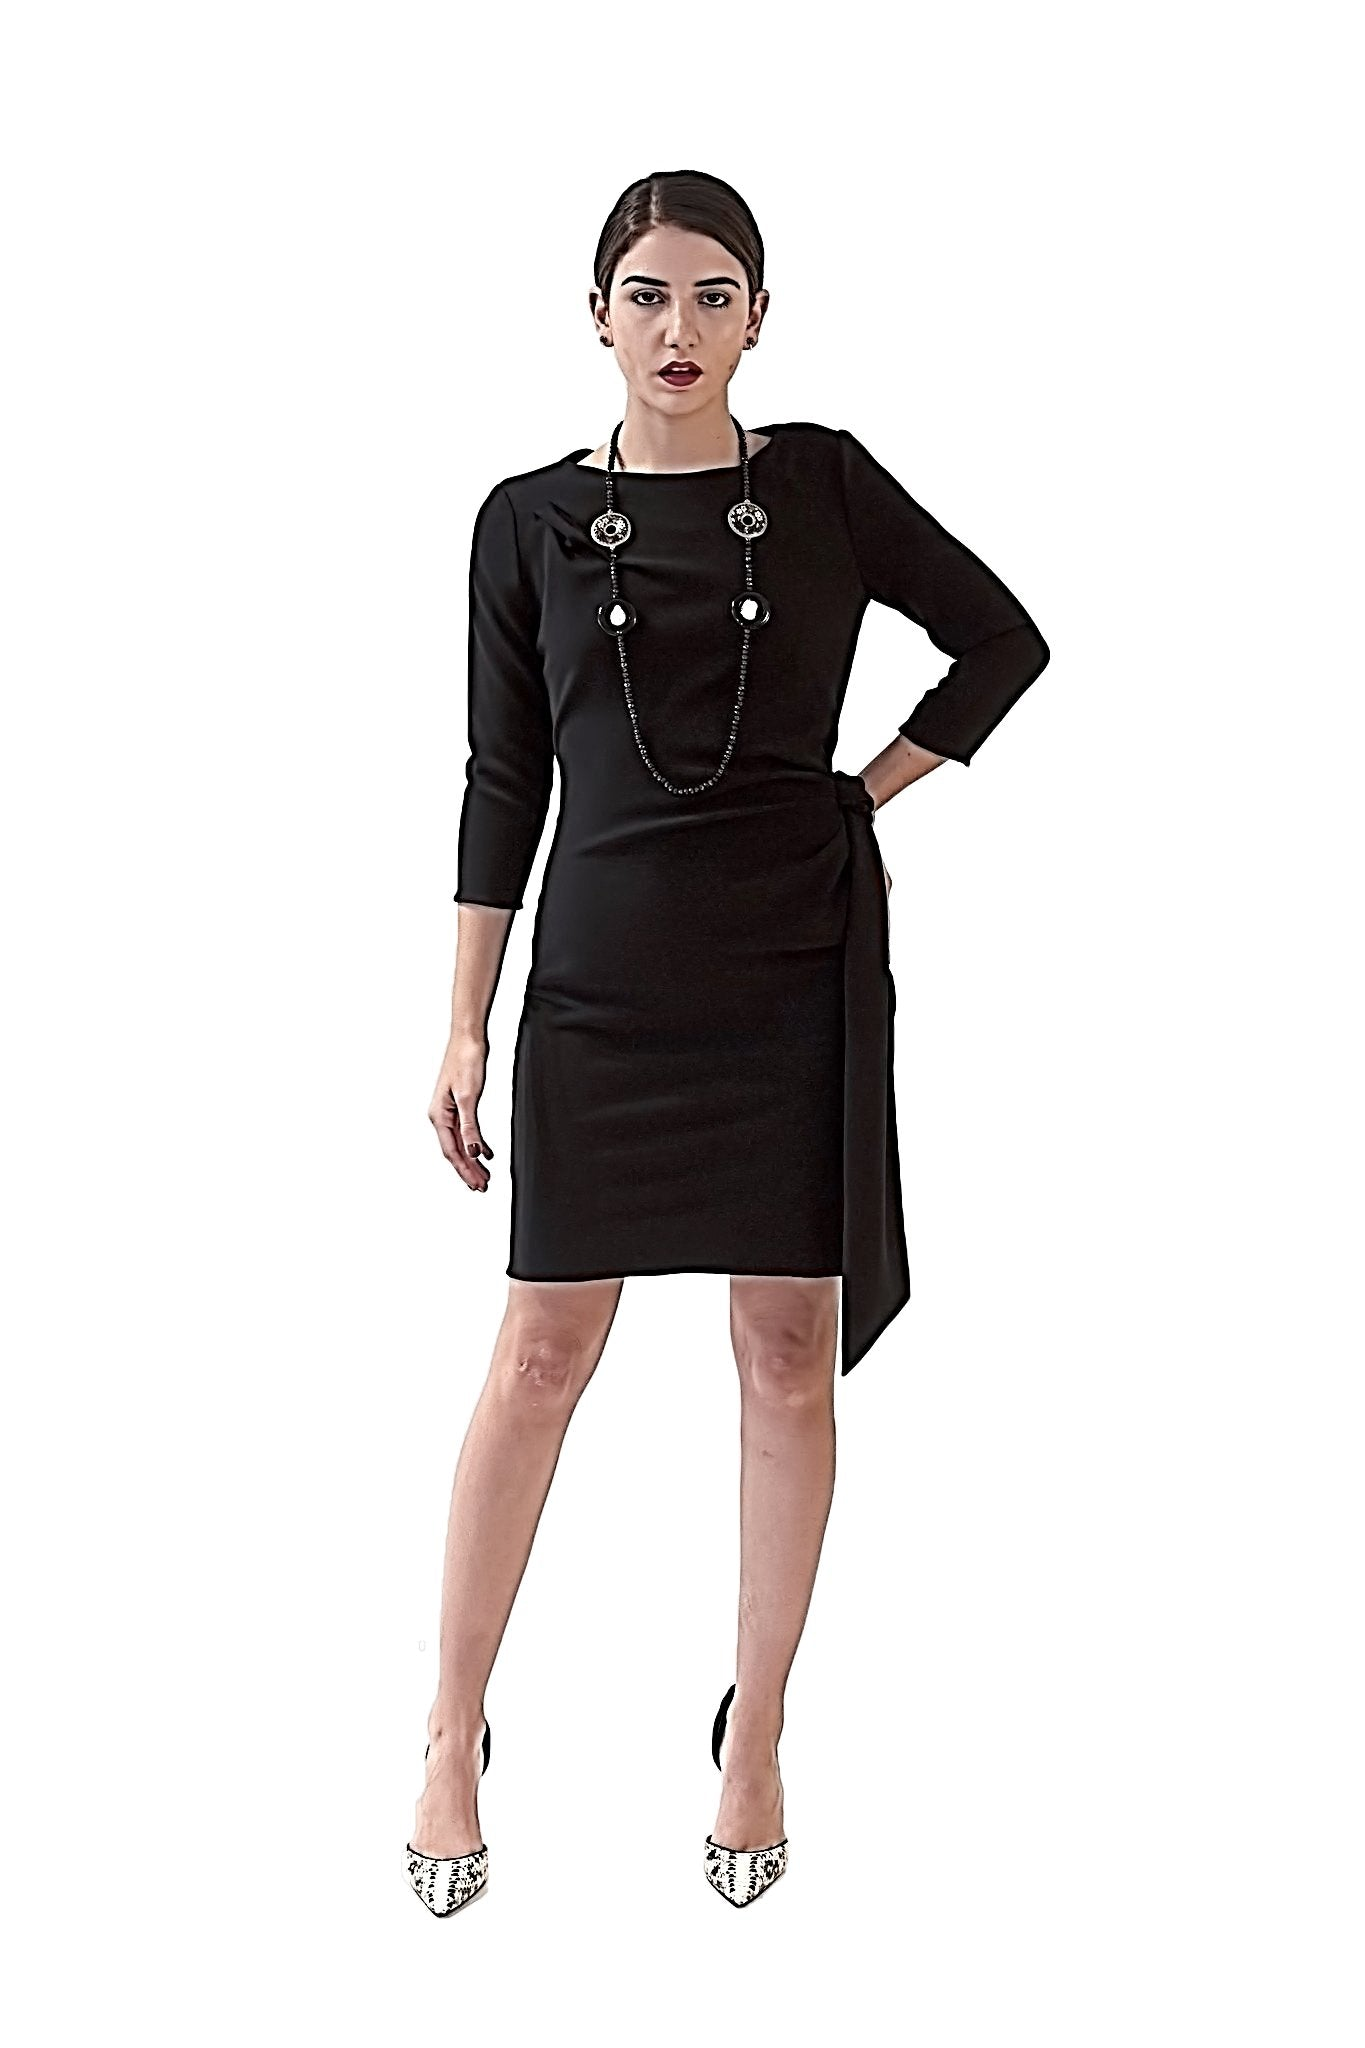 COCKTAIL  COLLECTION DAVID MAISON DM-5255D-B SHEATH CREPE DRESSCOCKTAIL  COLLECTION DAVID MAISON DM-5255D-B SHEATH CREPE DRESS, THE COCKTAIL COLLECTION 2017, DAVID MAISON, DAVID MAISON  - DAVID MAISON